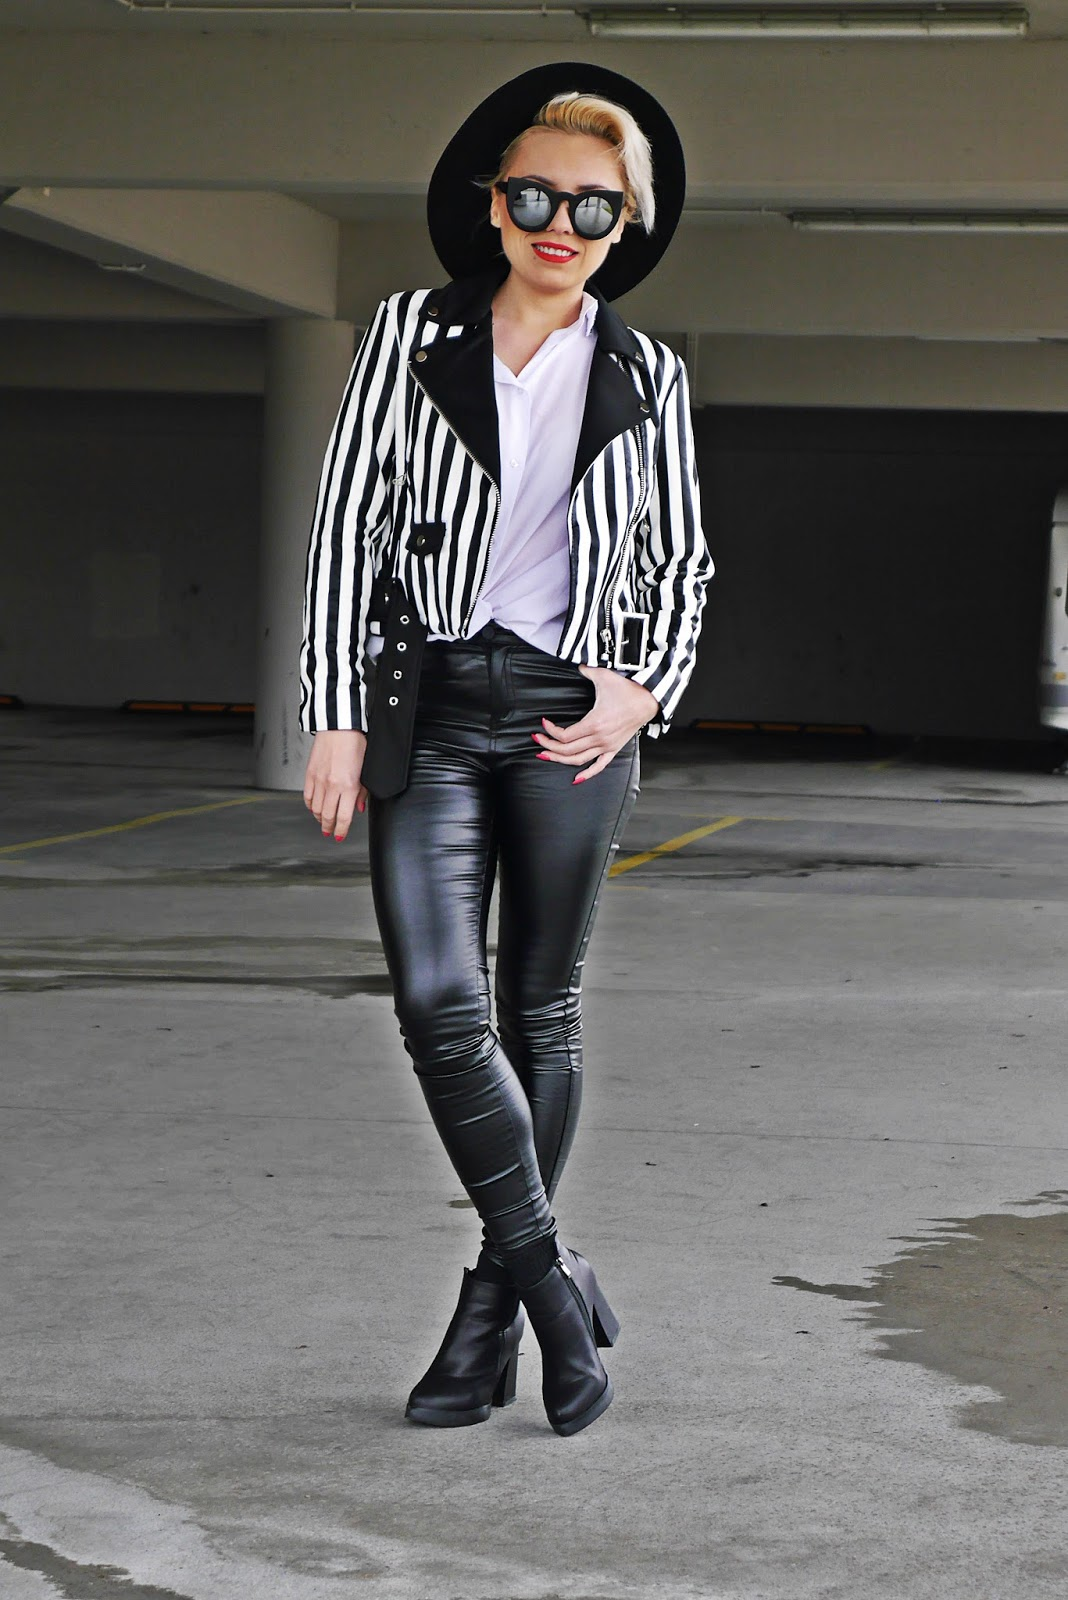 stripes_biker_jacket_leather_pants_karyn_blog_look_230317b